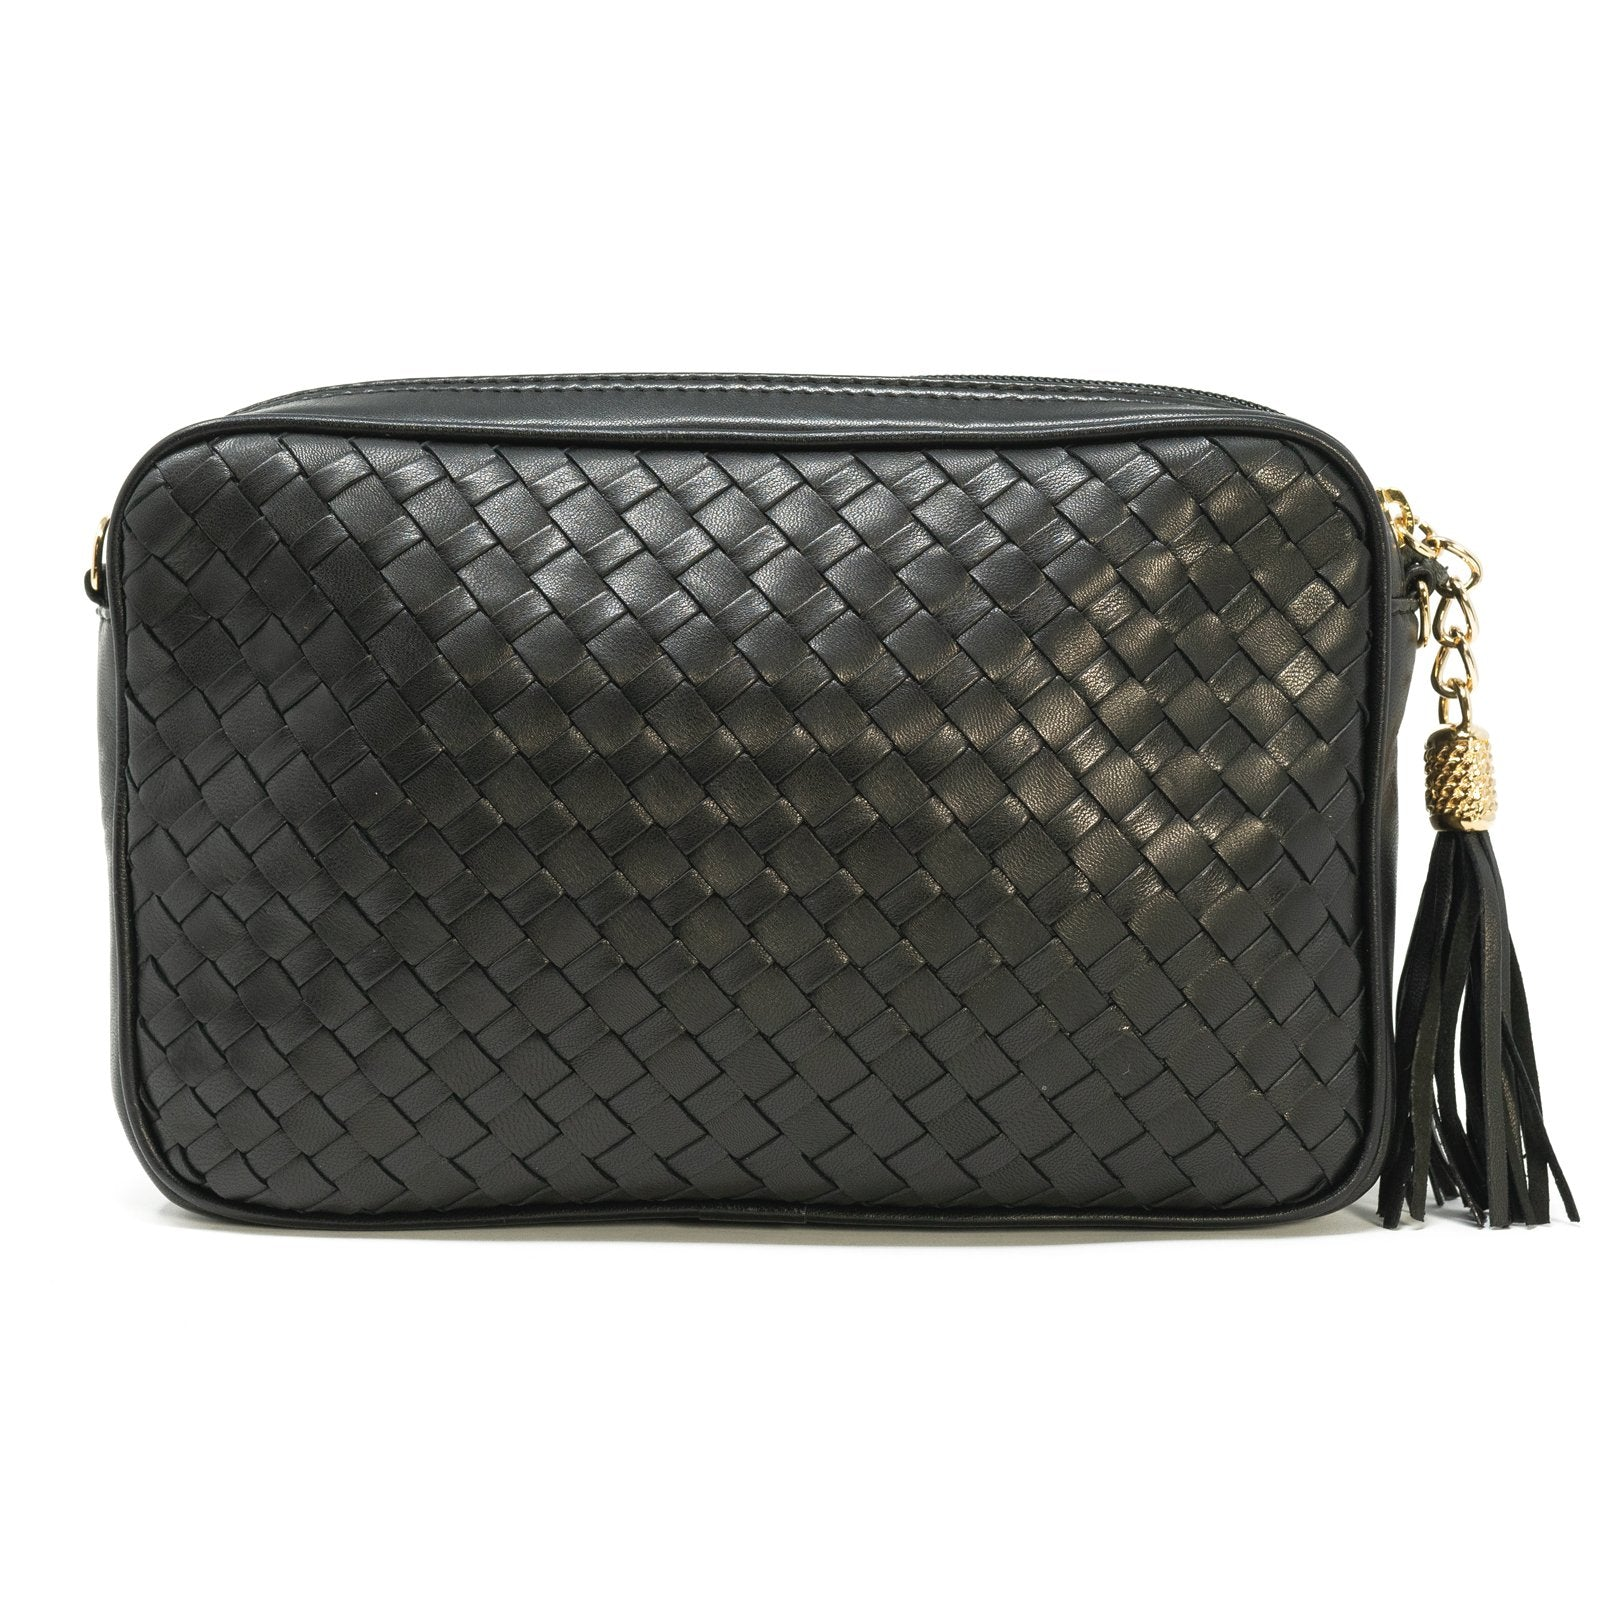 Women Intrecciato Leather Soft Zippered Clutch with Shoulder Chain Black Intreccio Quadro - Jennifer Tattanelli